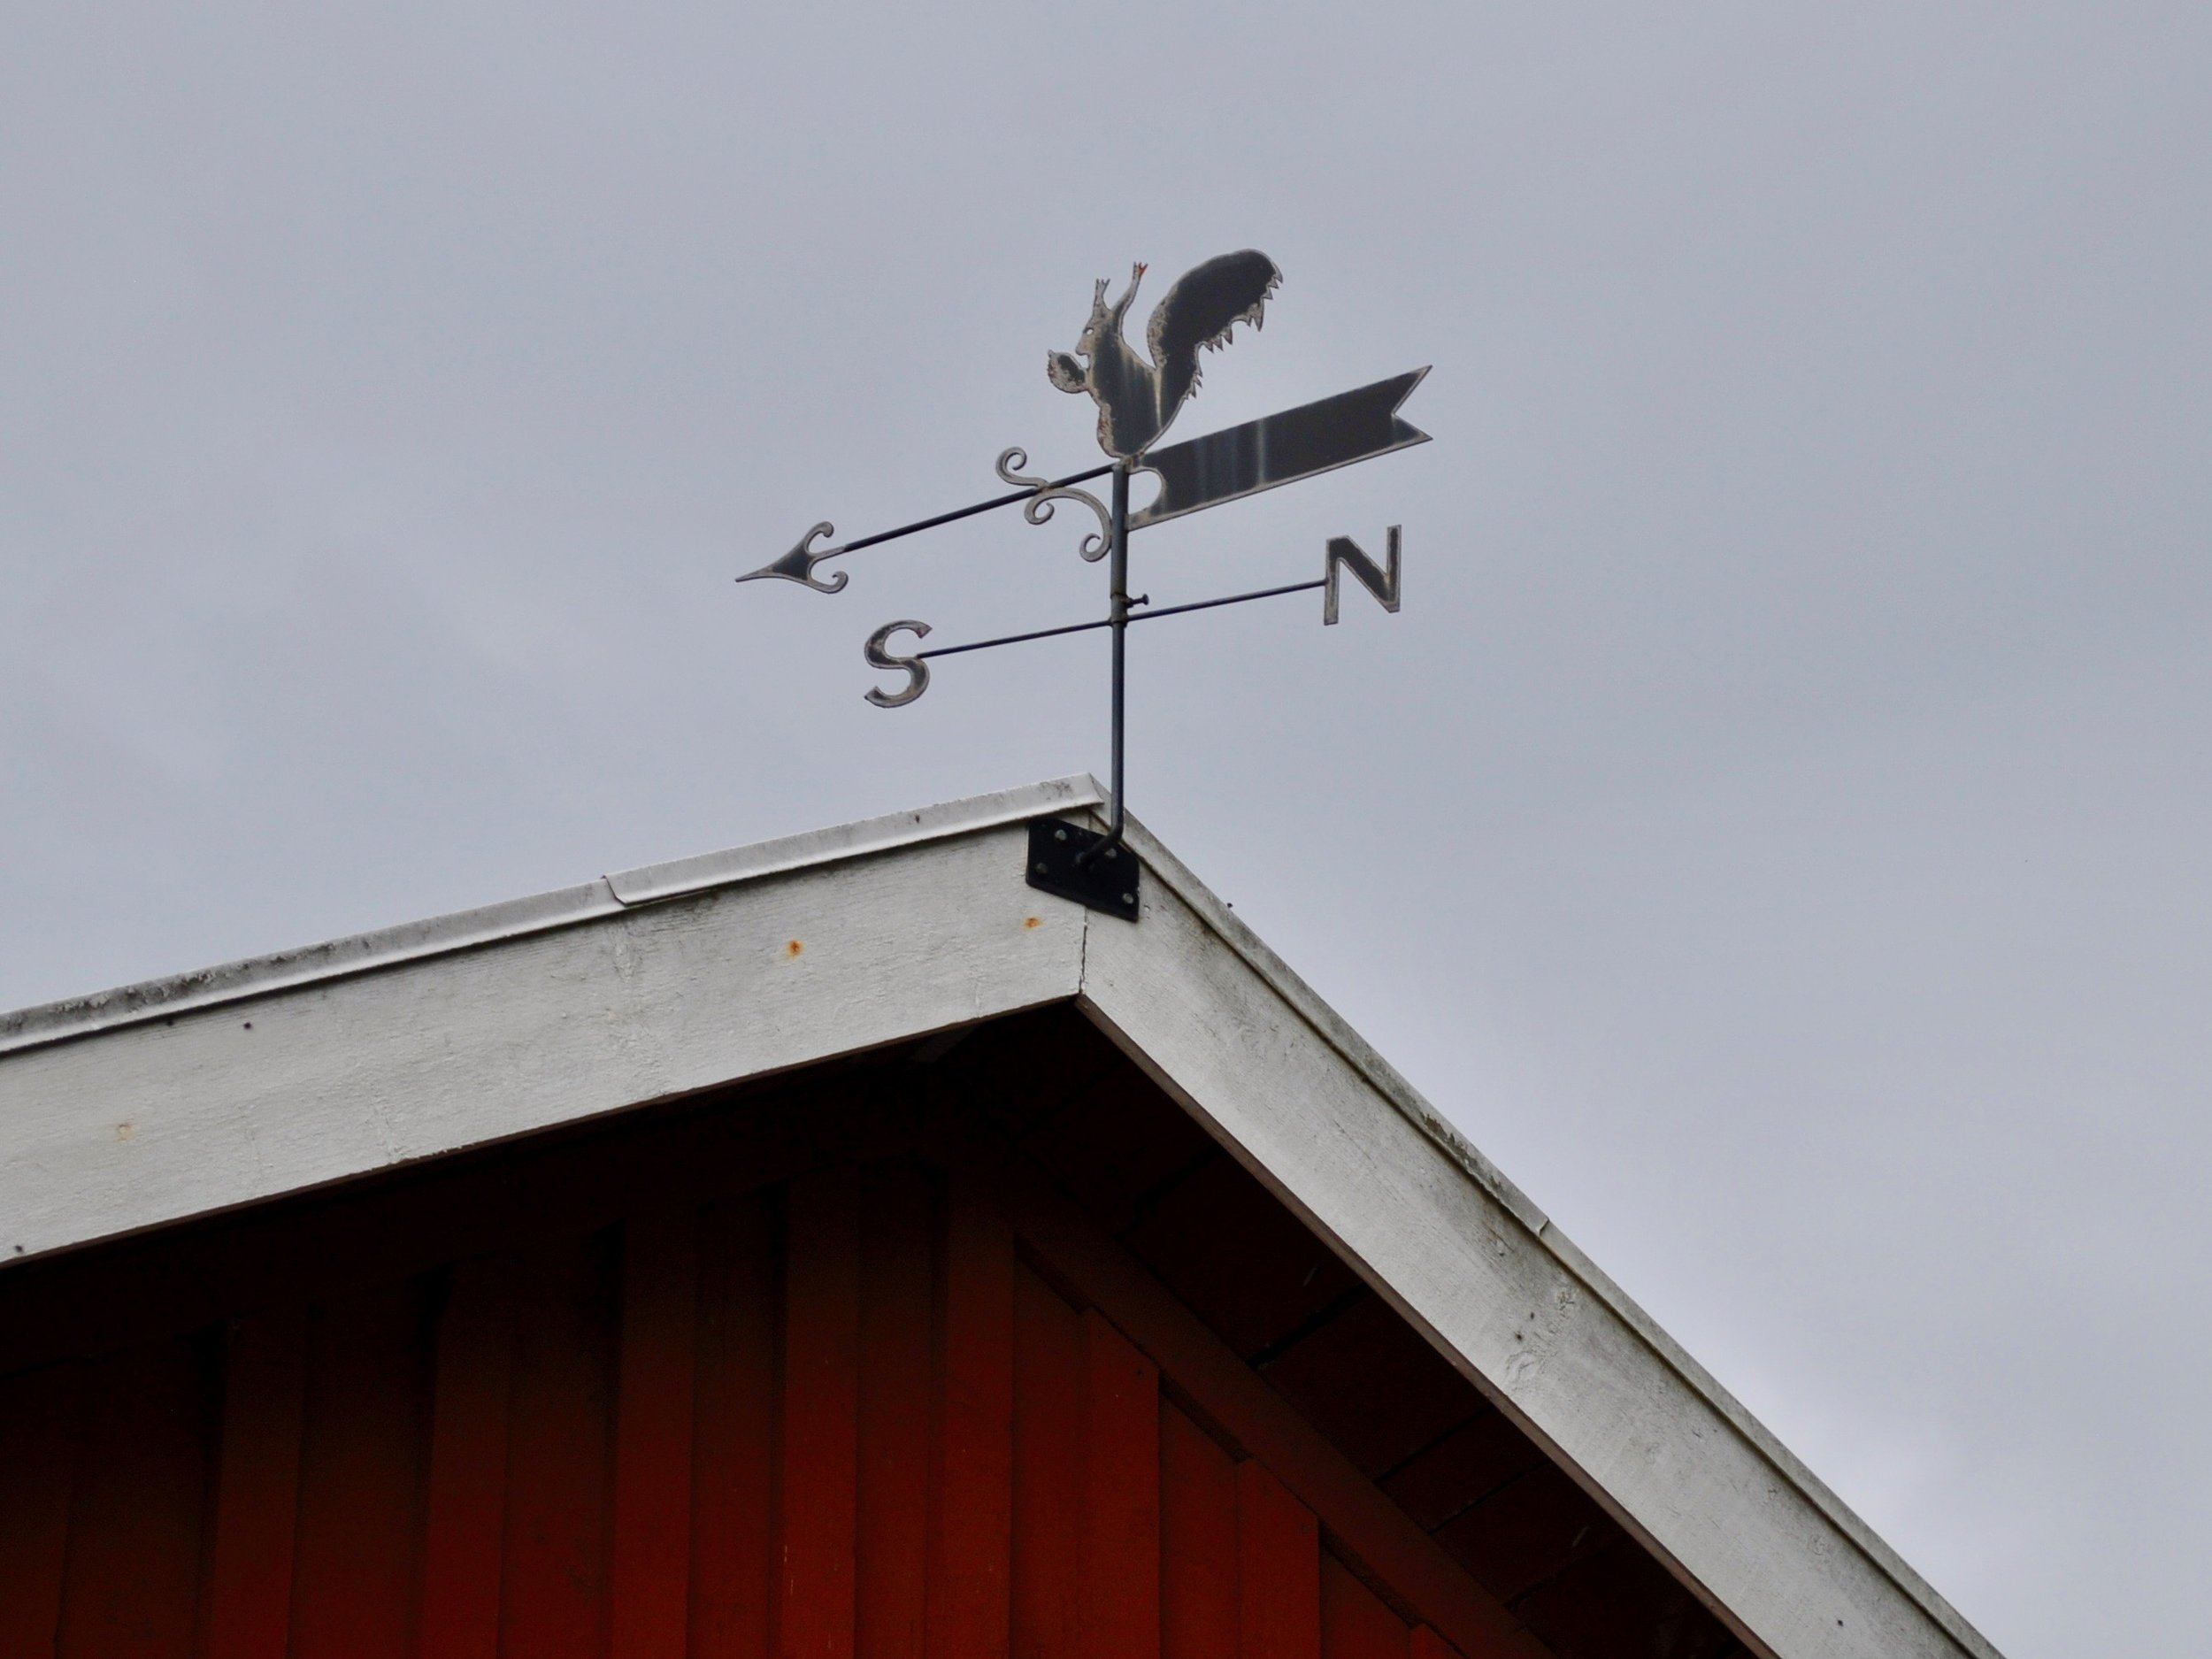 I loved this weathervane on the barn there!